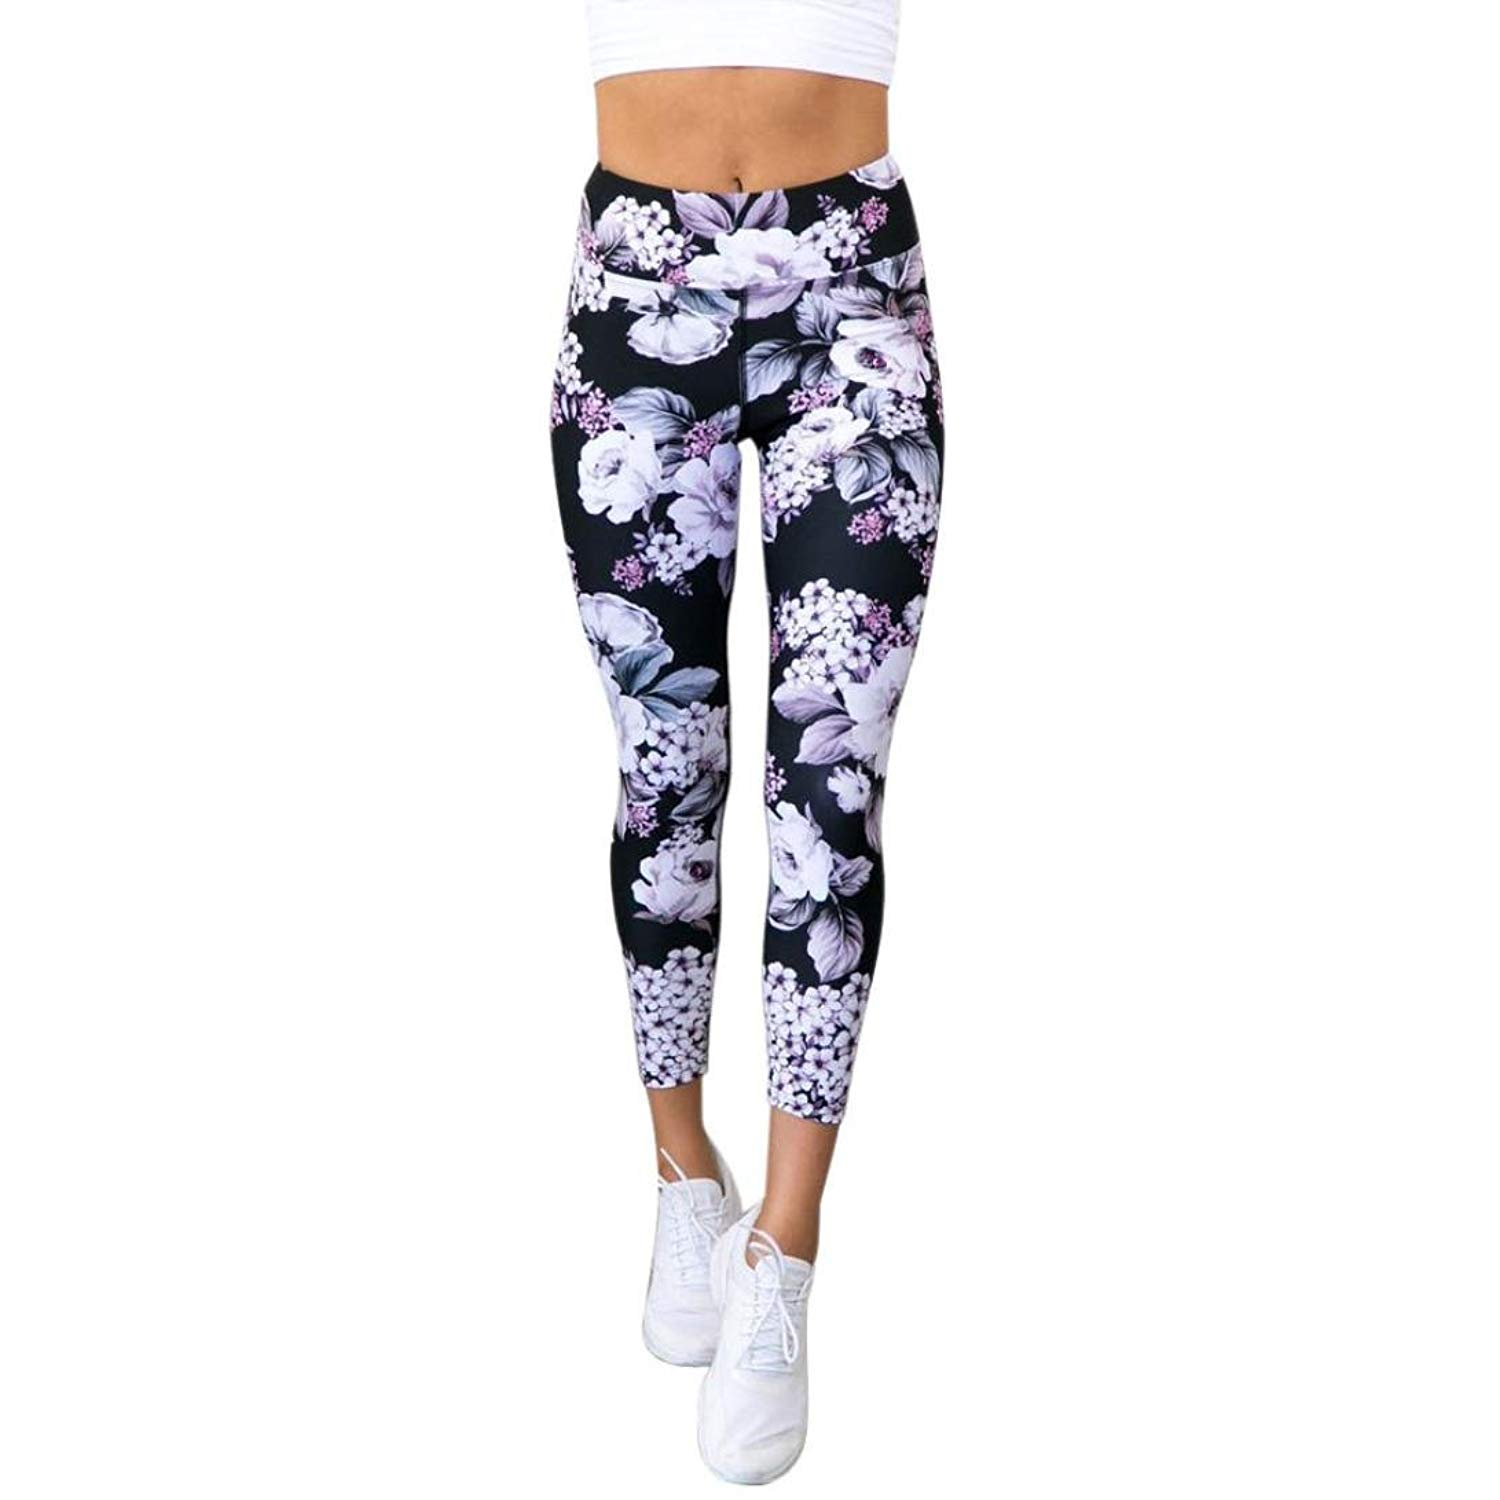 a0bb16ad183 Get Quotations · RAISINGTOP Women Yoga Pants 7 8 Length Floral Print Sports  Gym Running Leggings Athletic Trouser